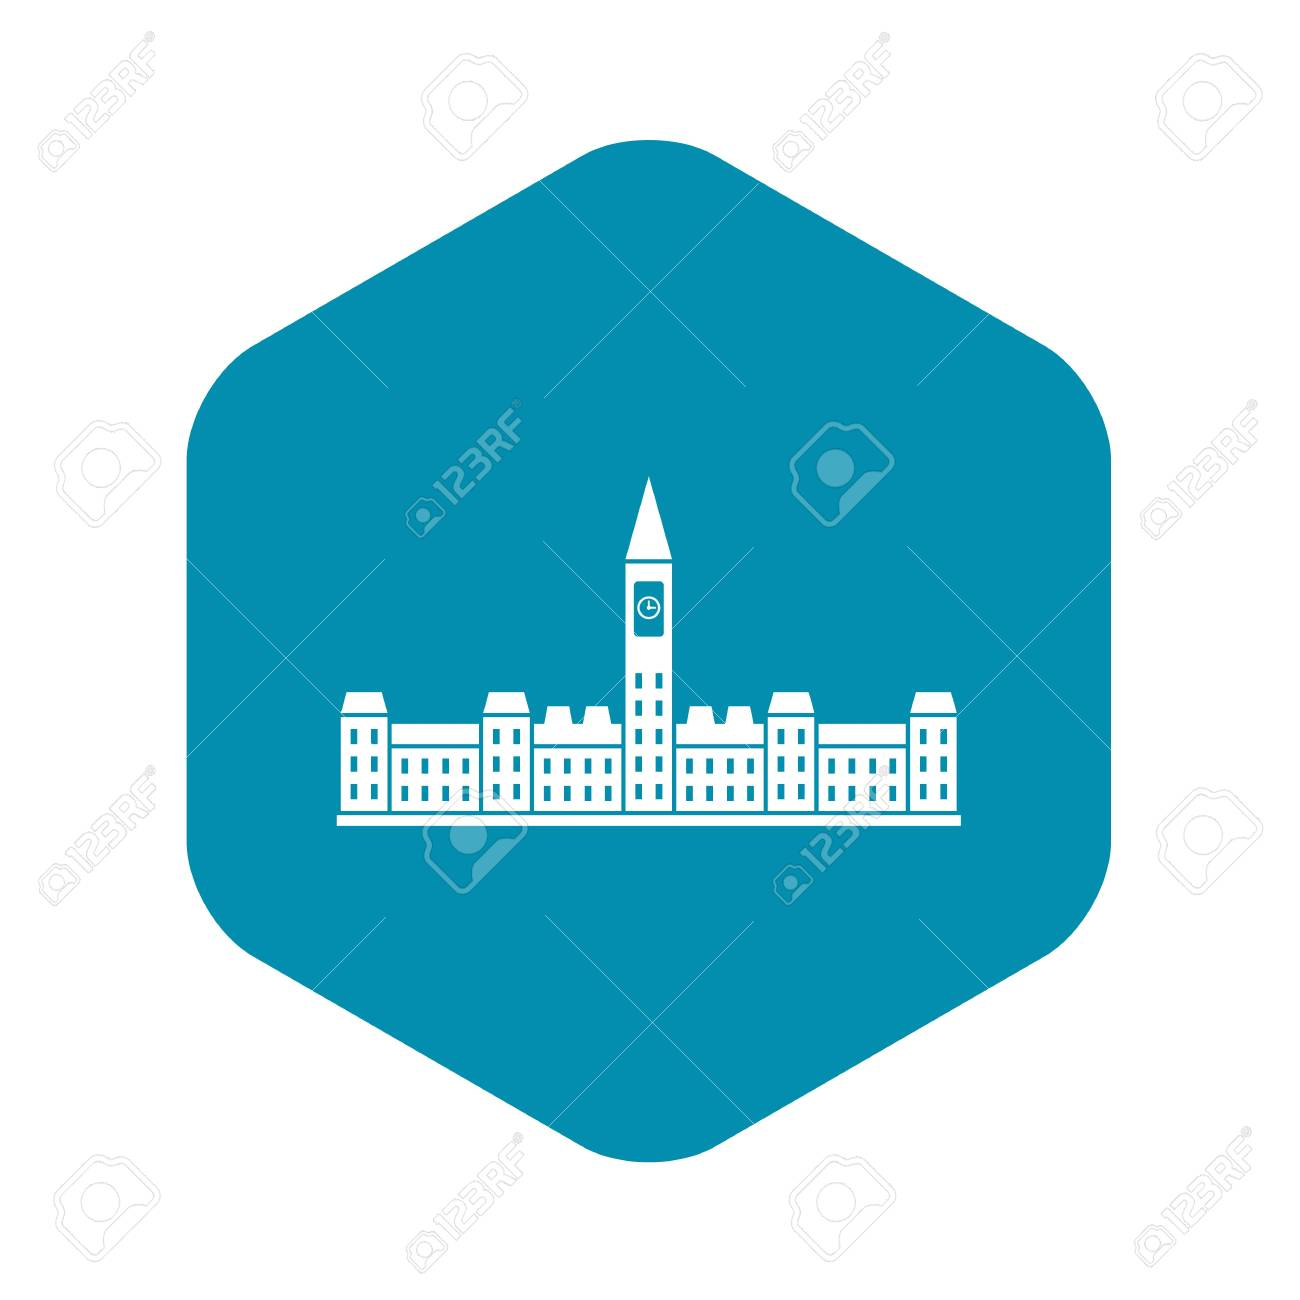 Parliament Building of Canada icon, simple style - 122867594